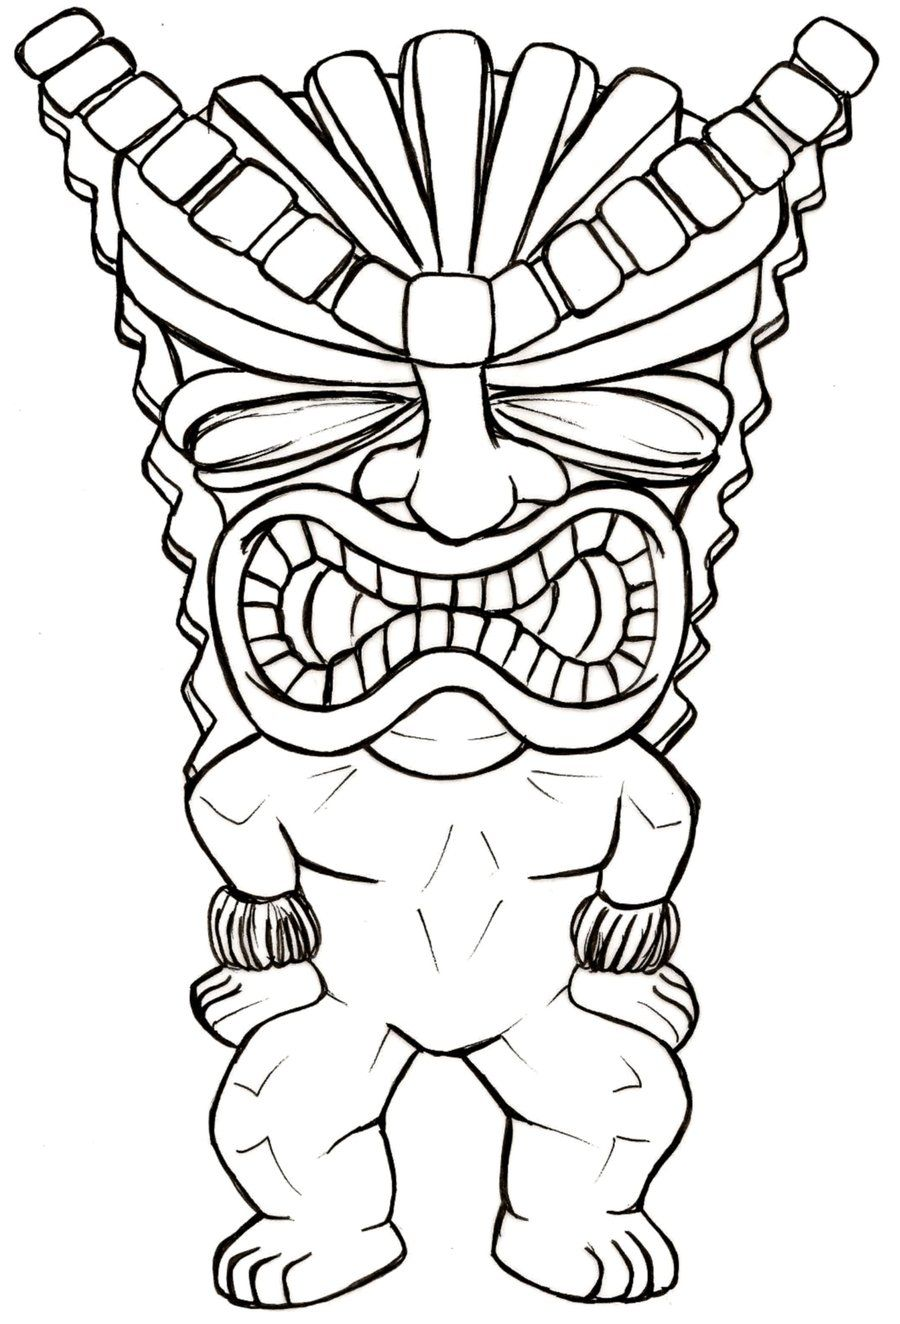 Money Tiki Man Tattoo By Metacharis On DeviantART